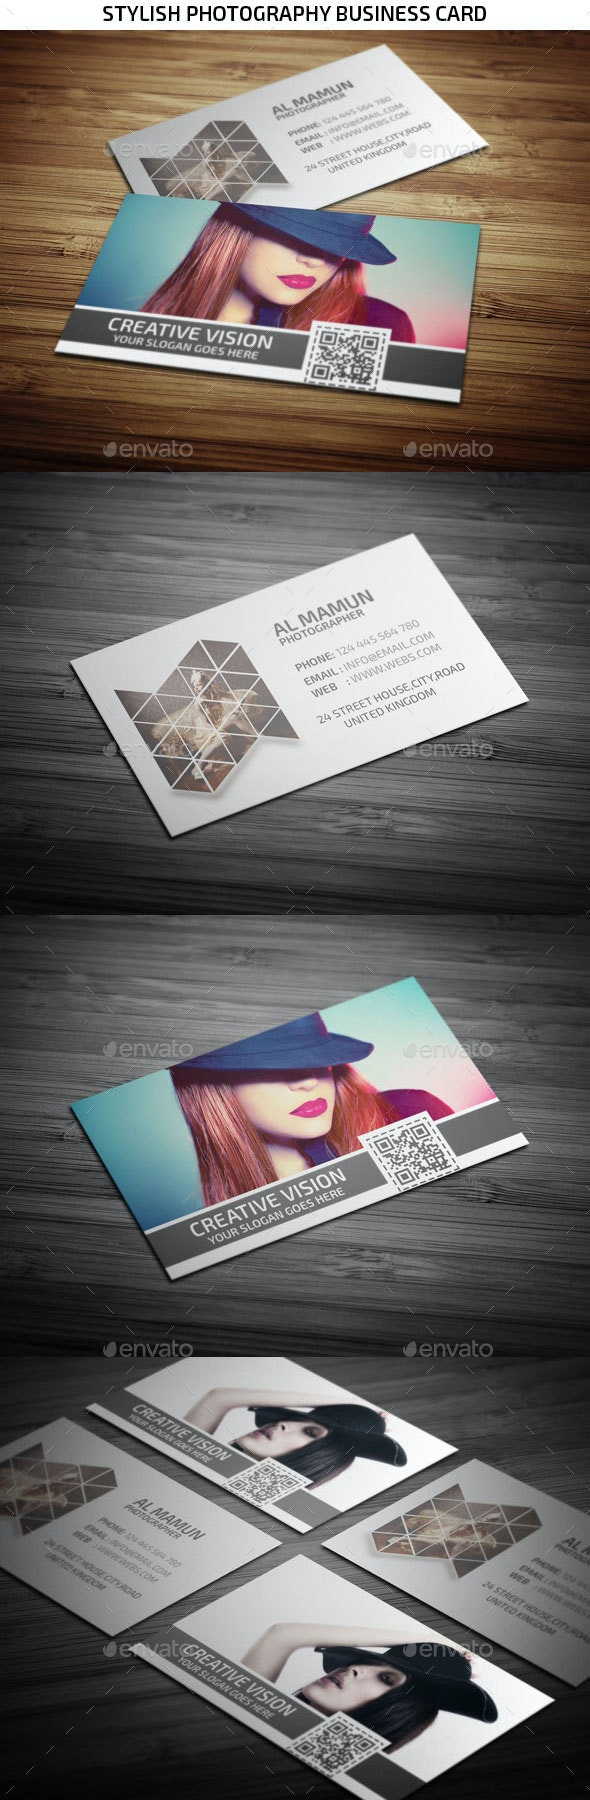 Stylish Photography Business Card - Creative Business Cards